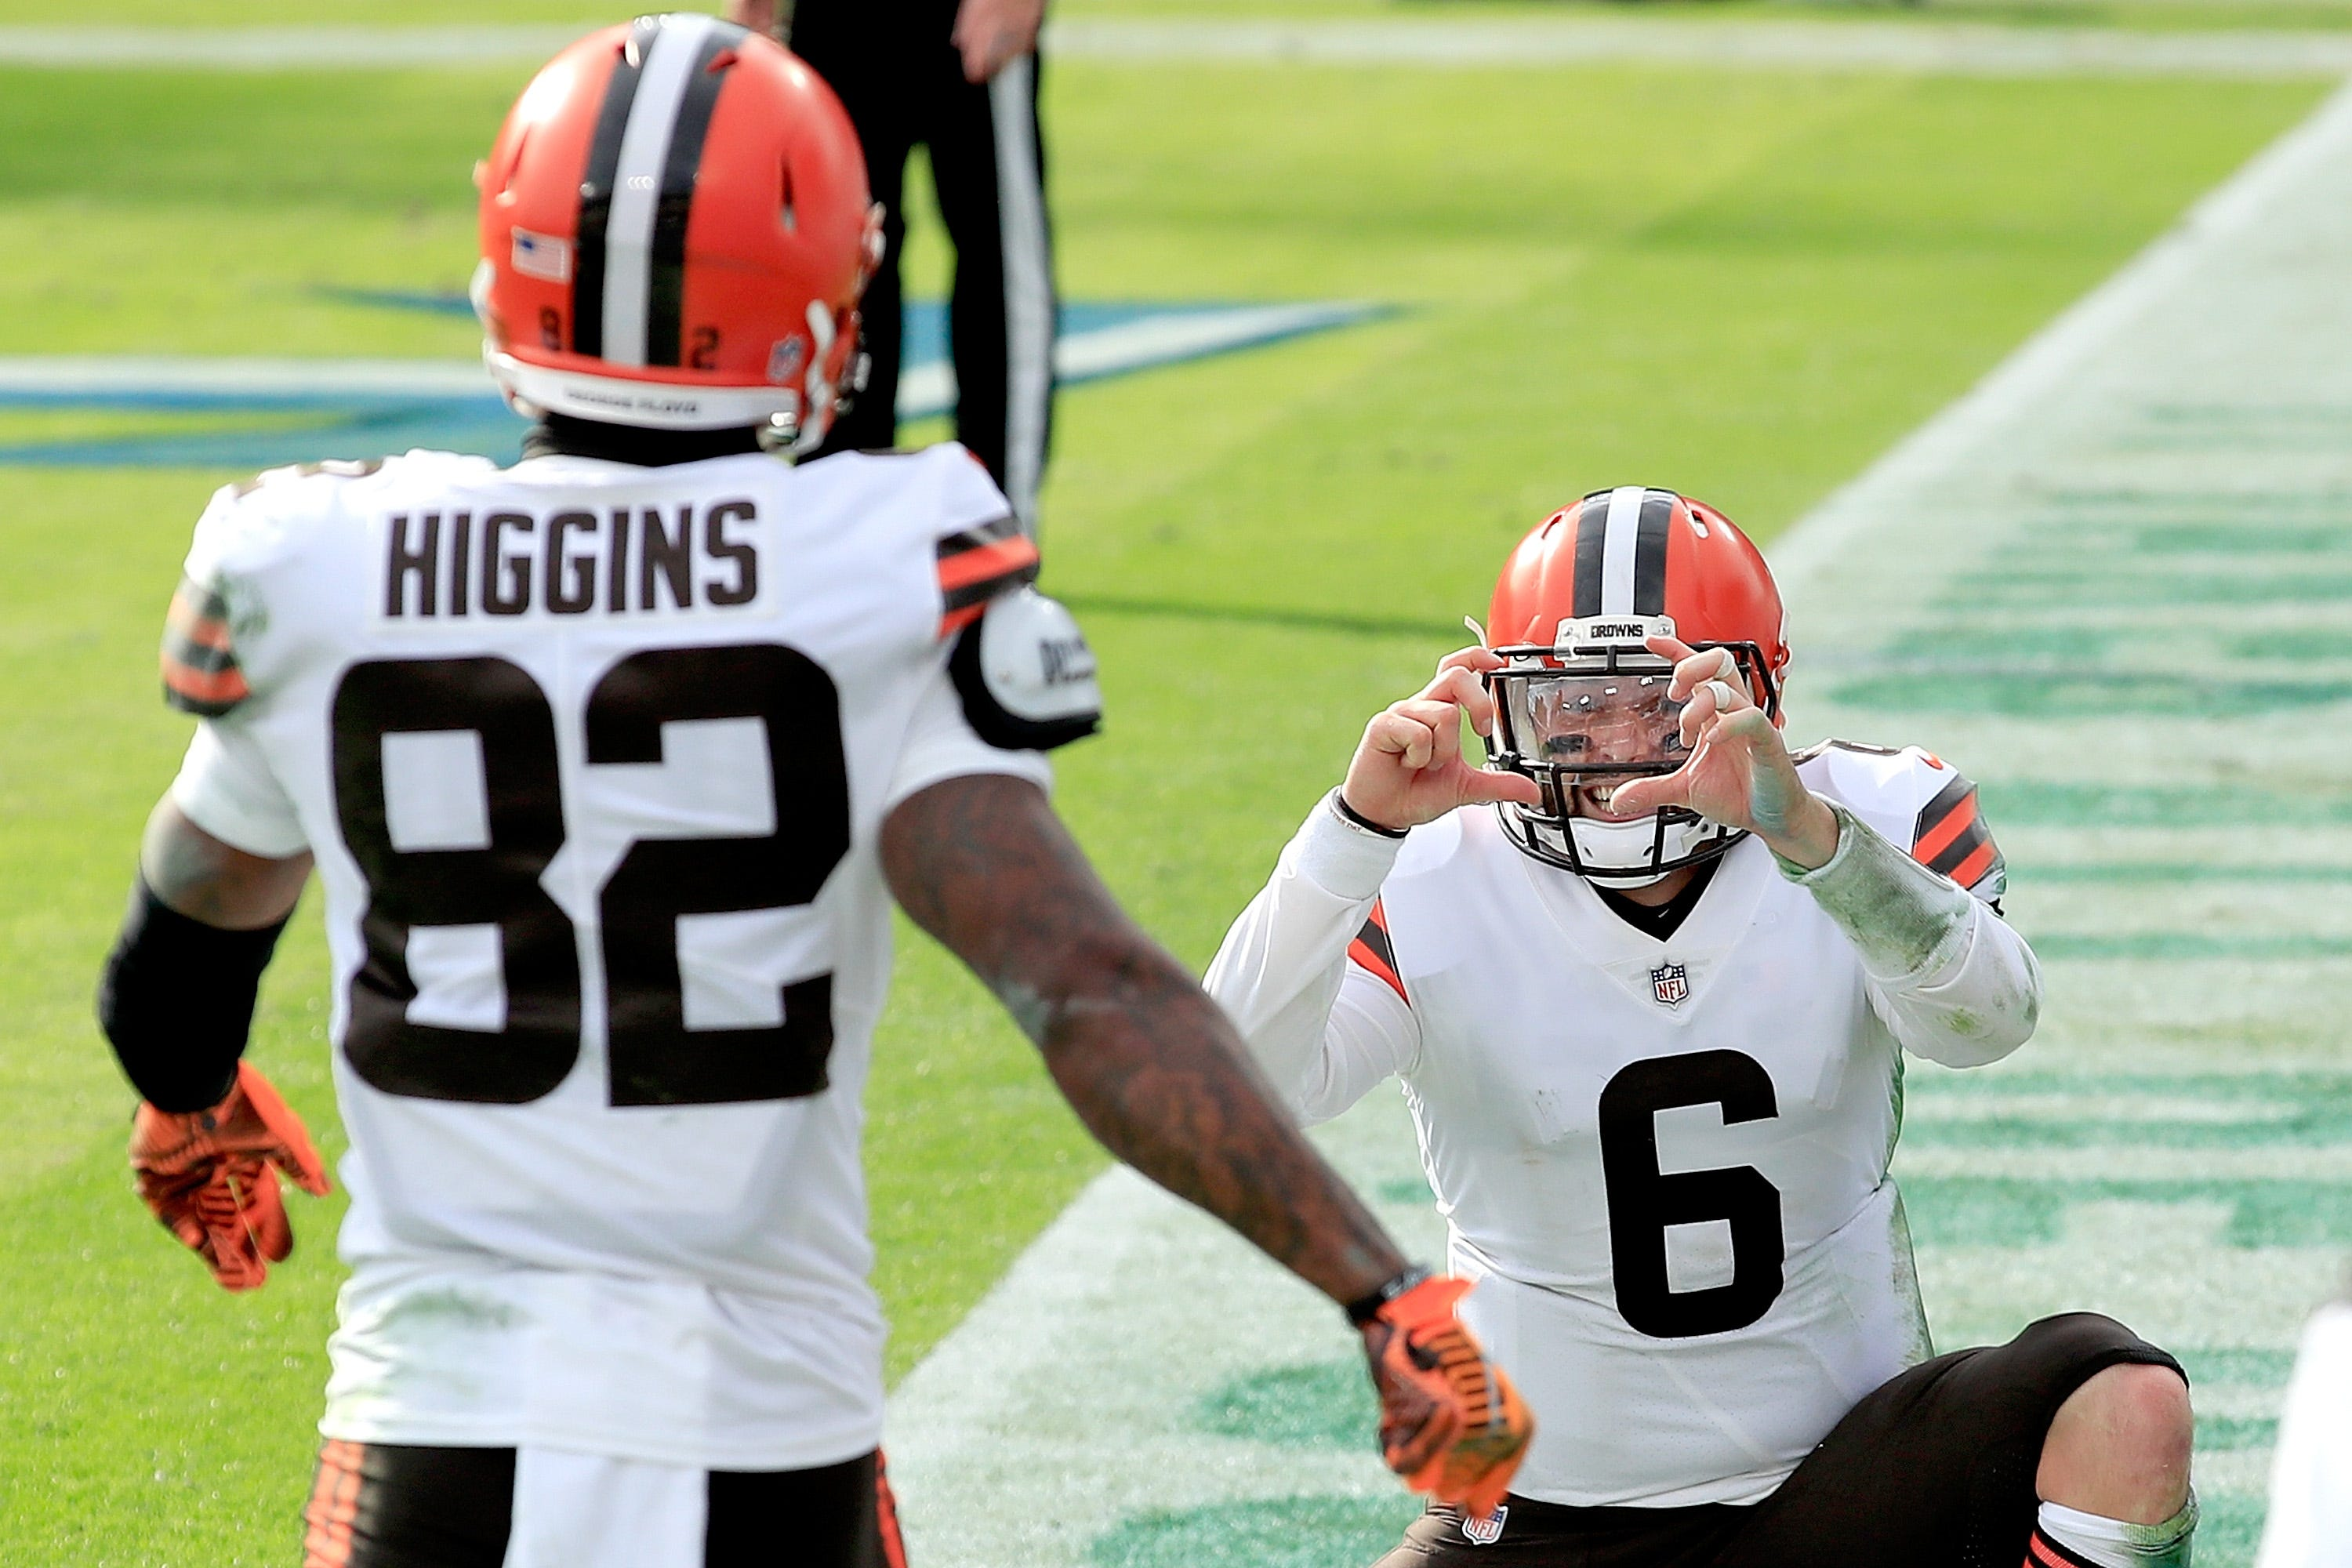 Opinion: Cleveland Browns have turned former hype into legit substance